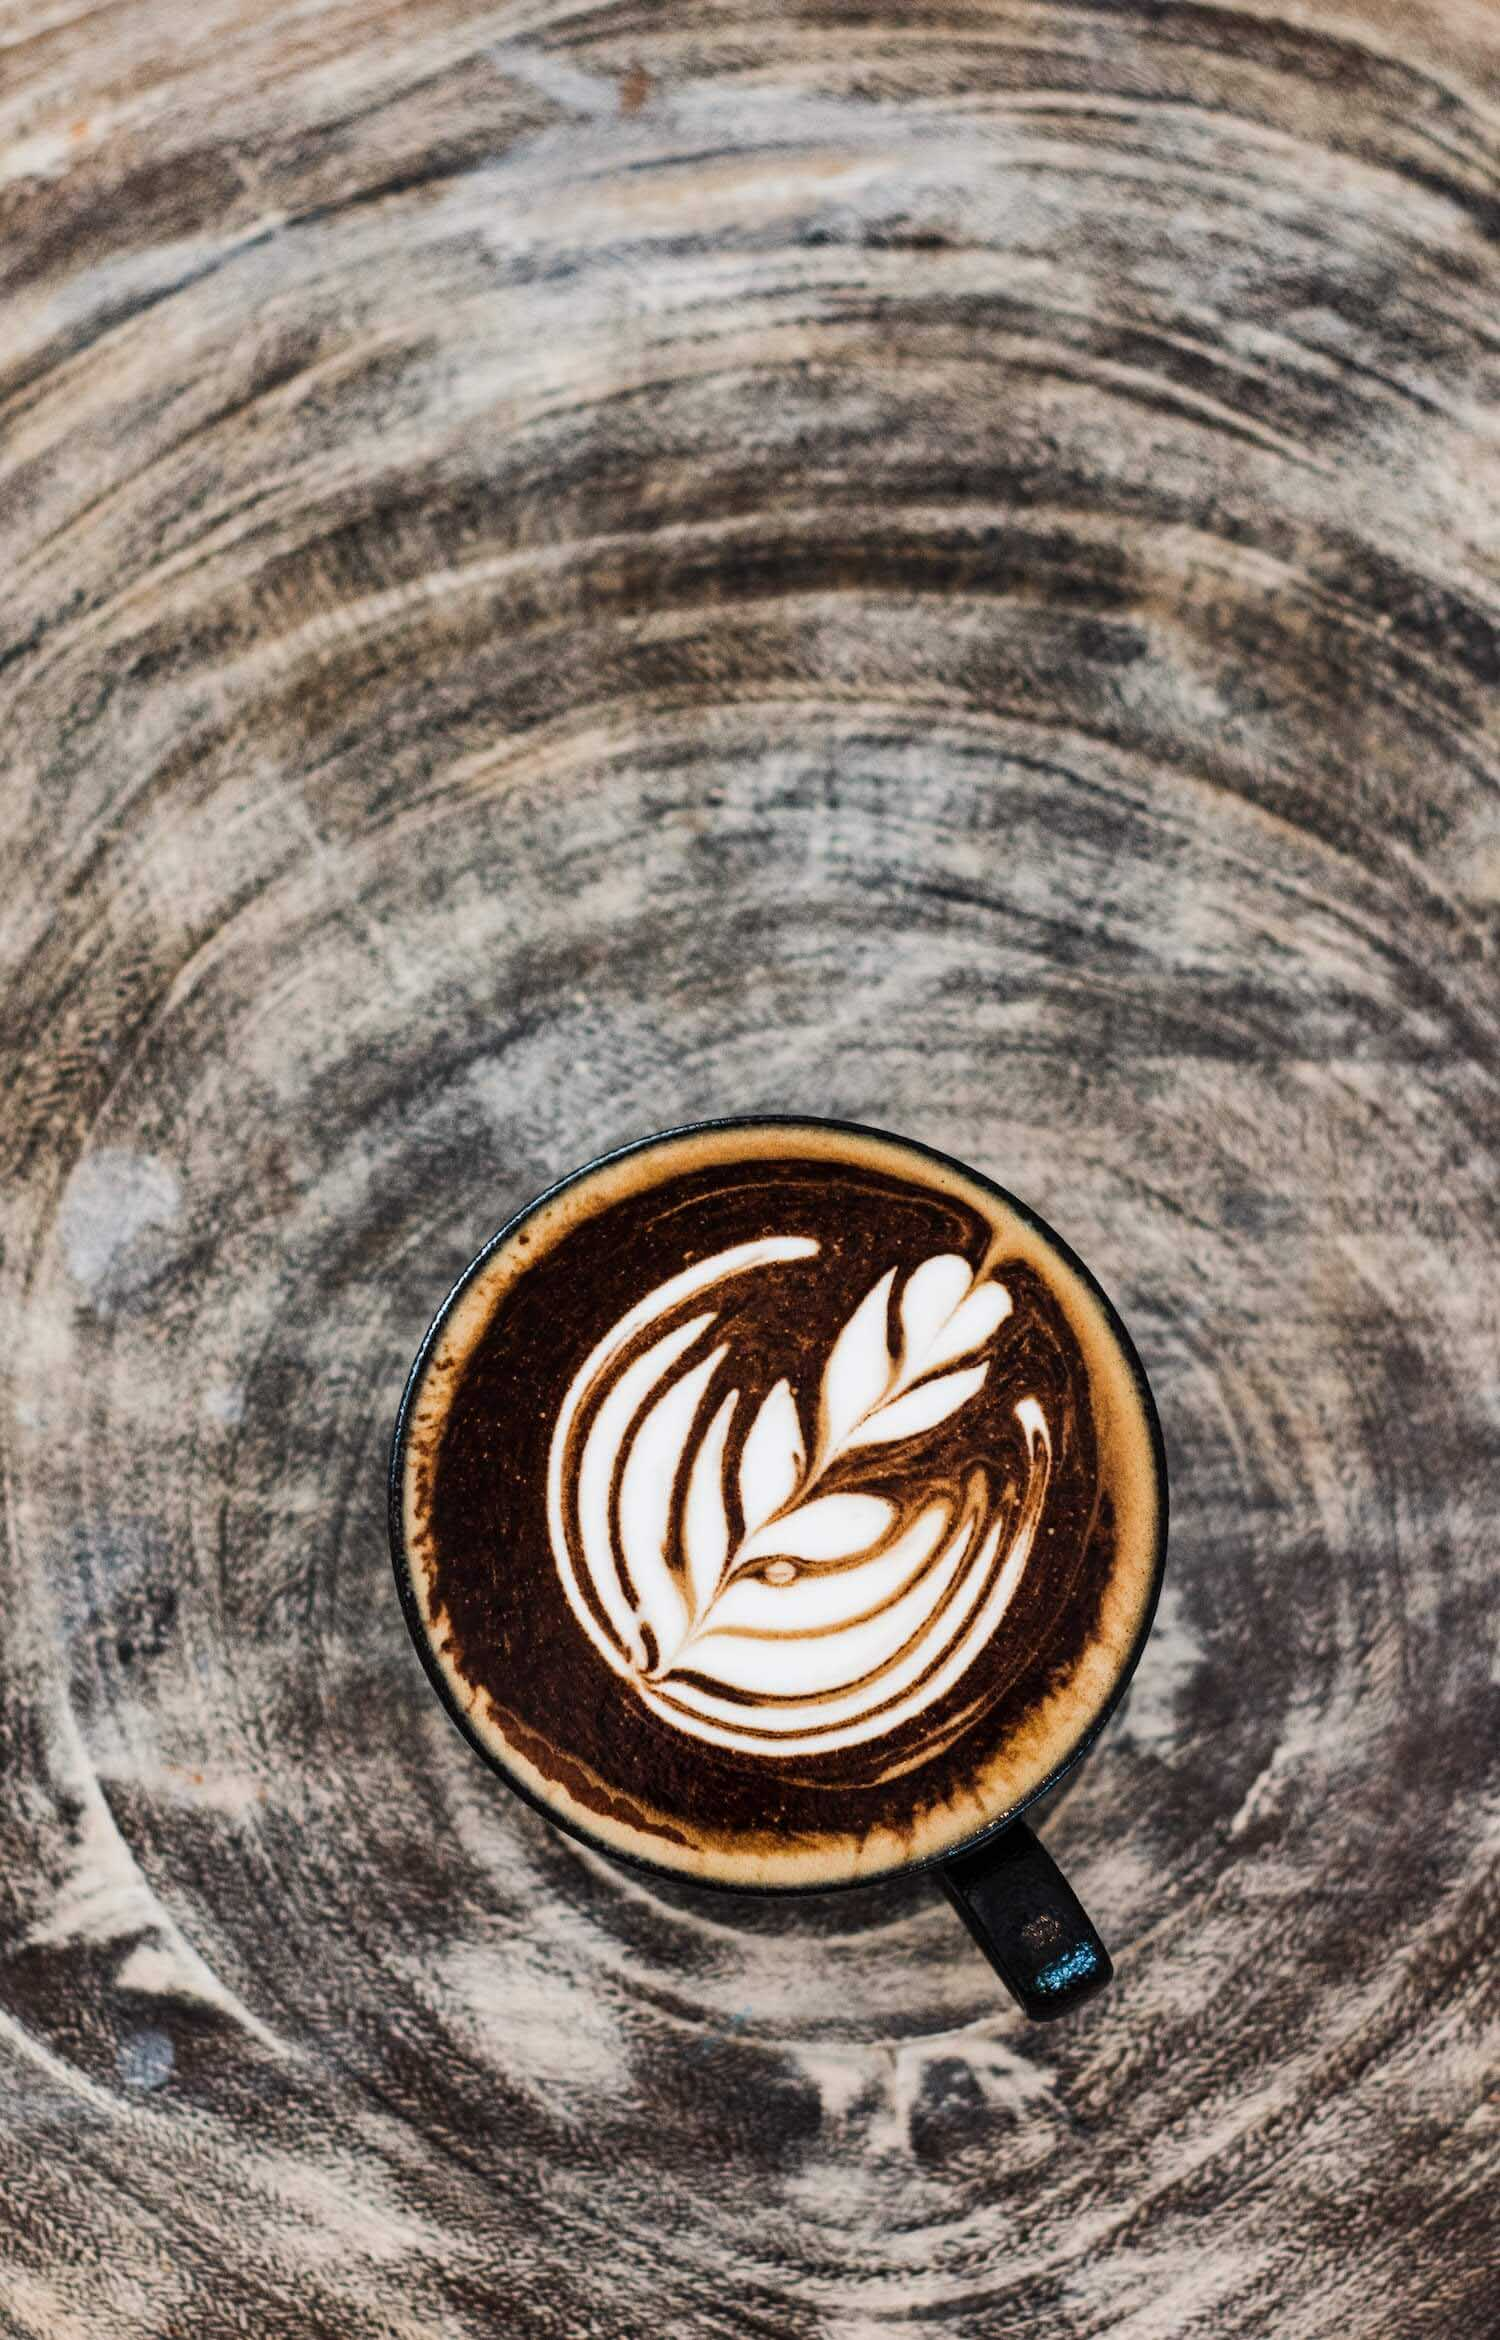 TCE-COFFEE-IMAGES-896